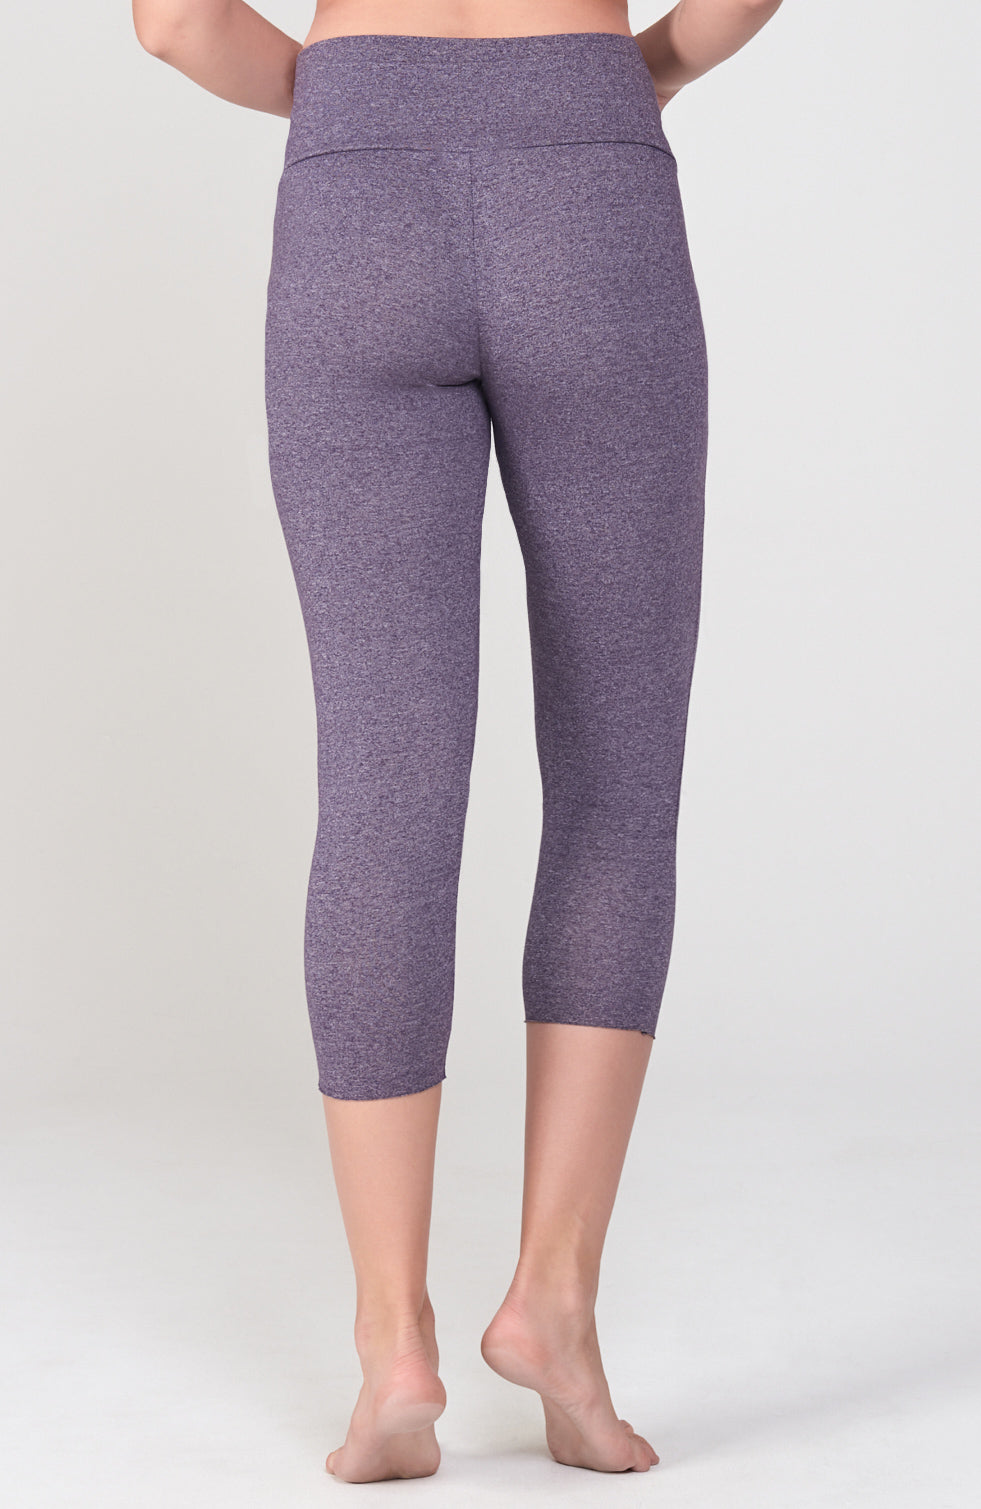 Pose Capri in Deep Purple